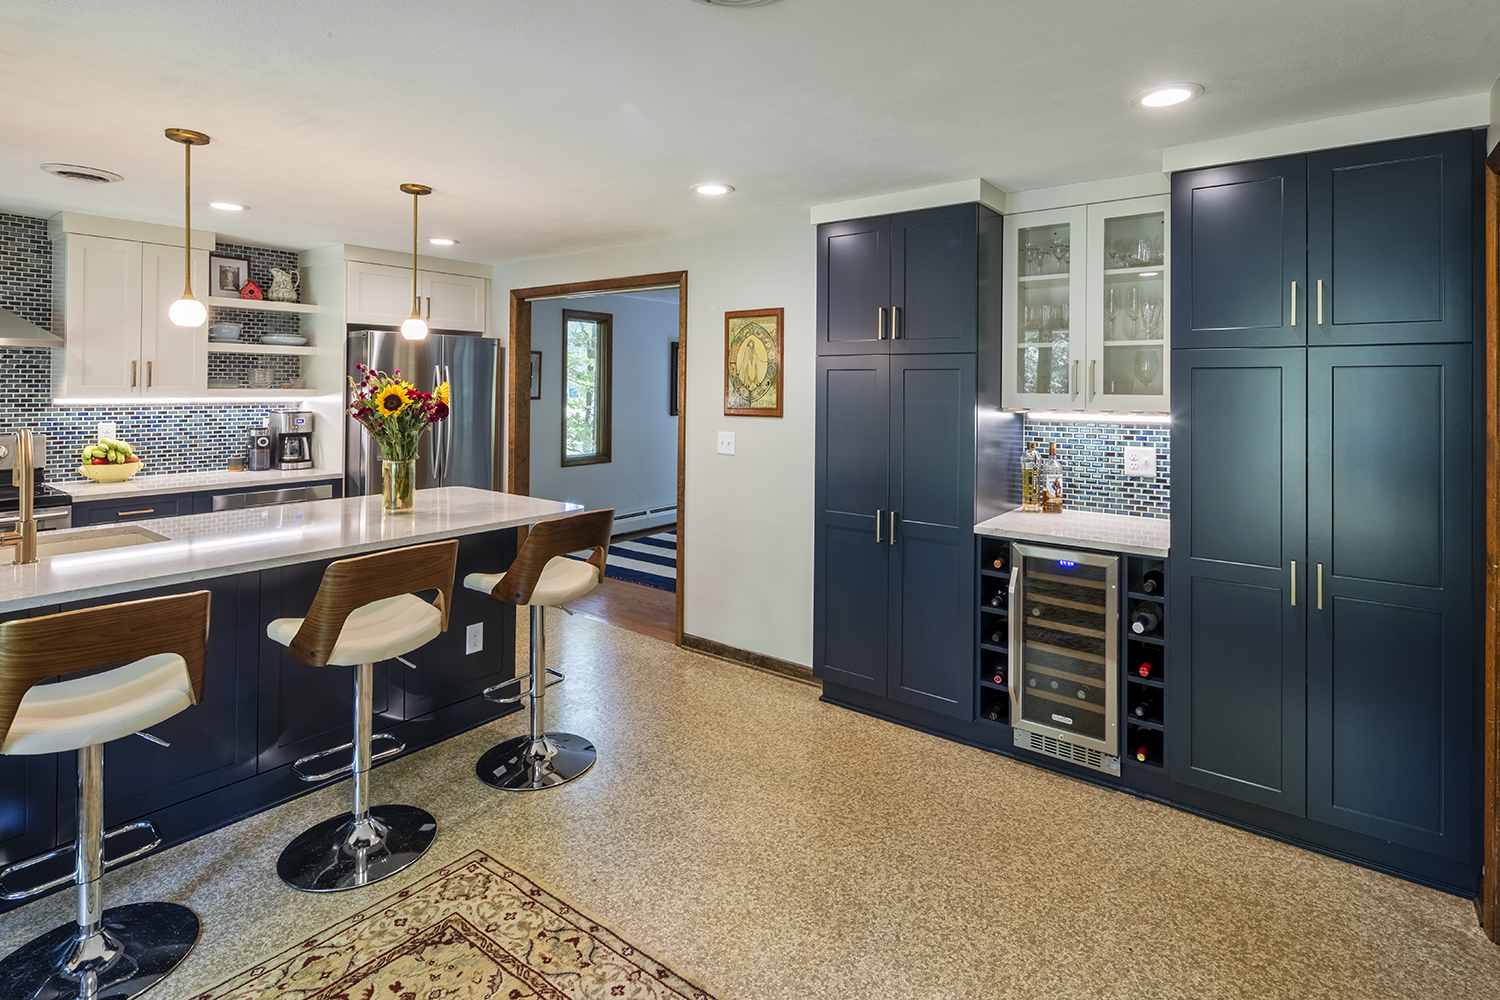 This kitchen gives the classic nautical theme an update! Making the most of the space with built in pantry storage and sleek modern seating at the hub of the kitchen.